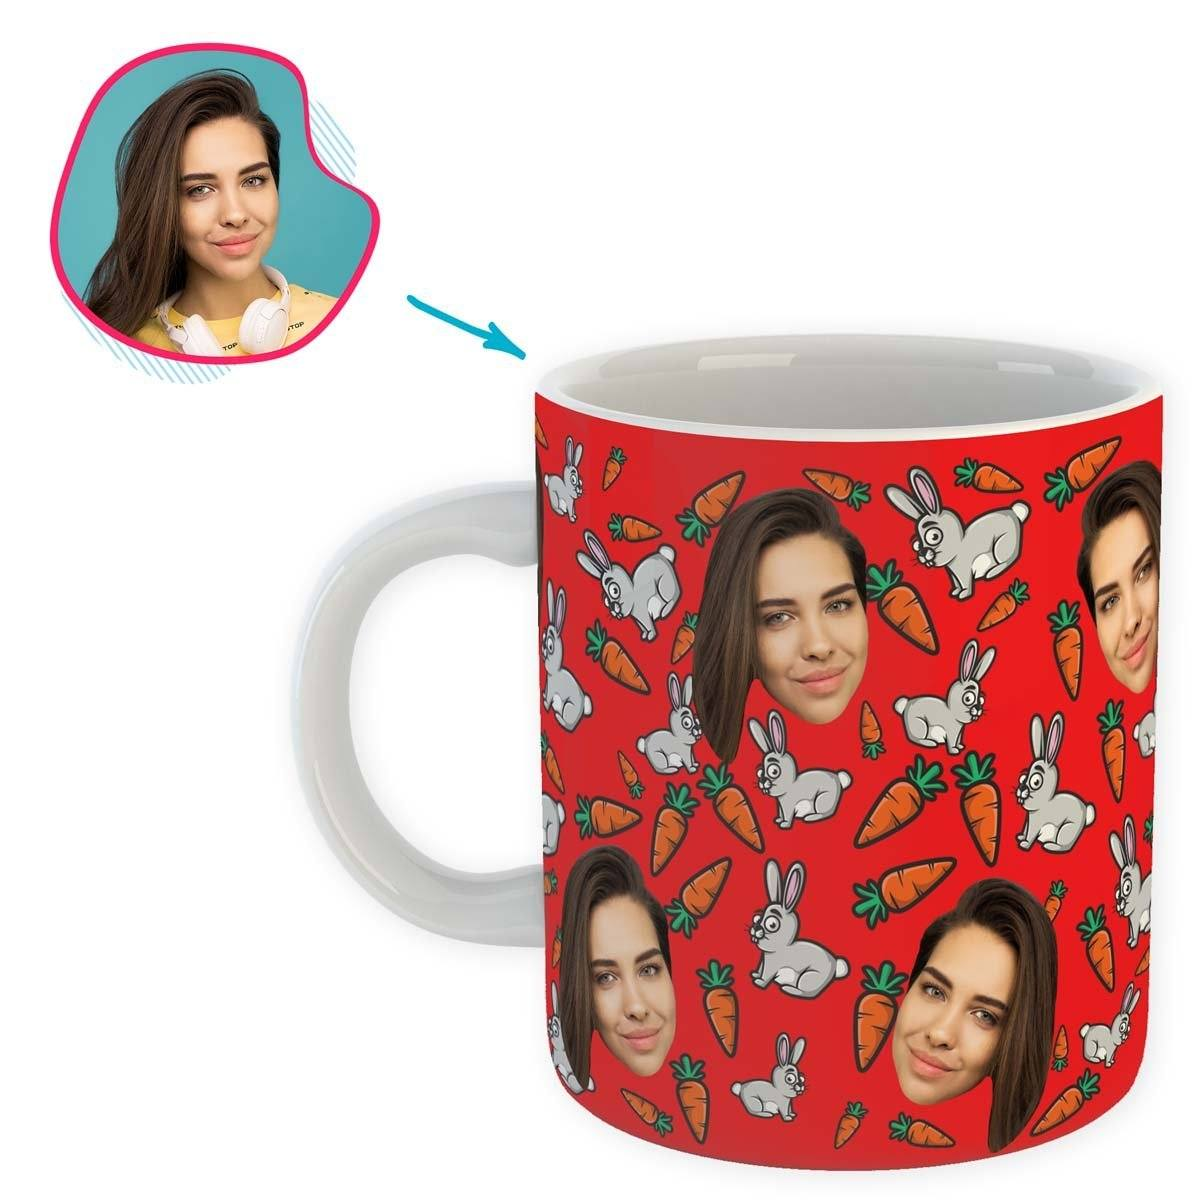 red Bunny mug personalized with photo of face printed on it